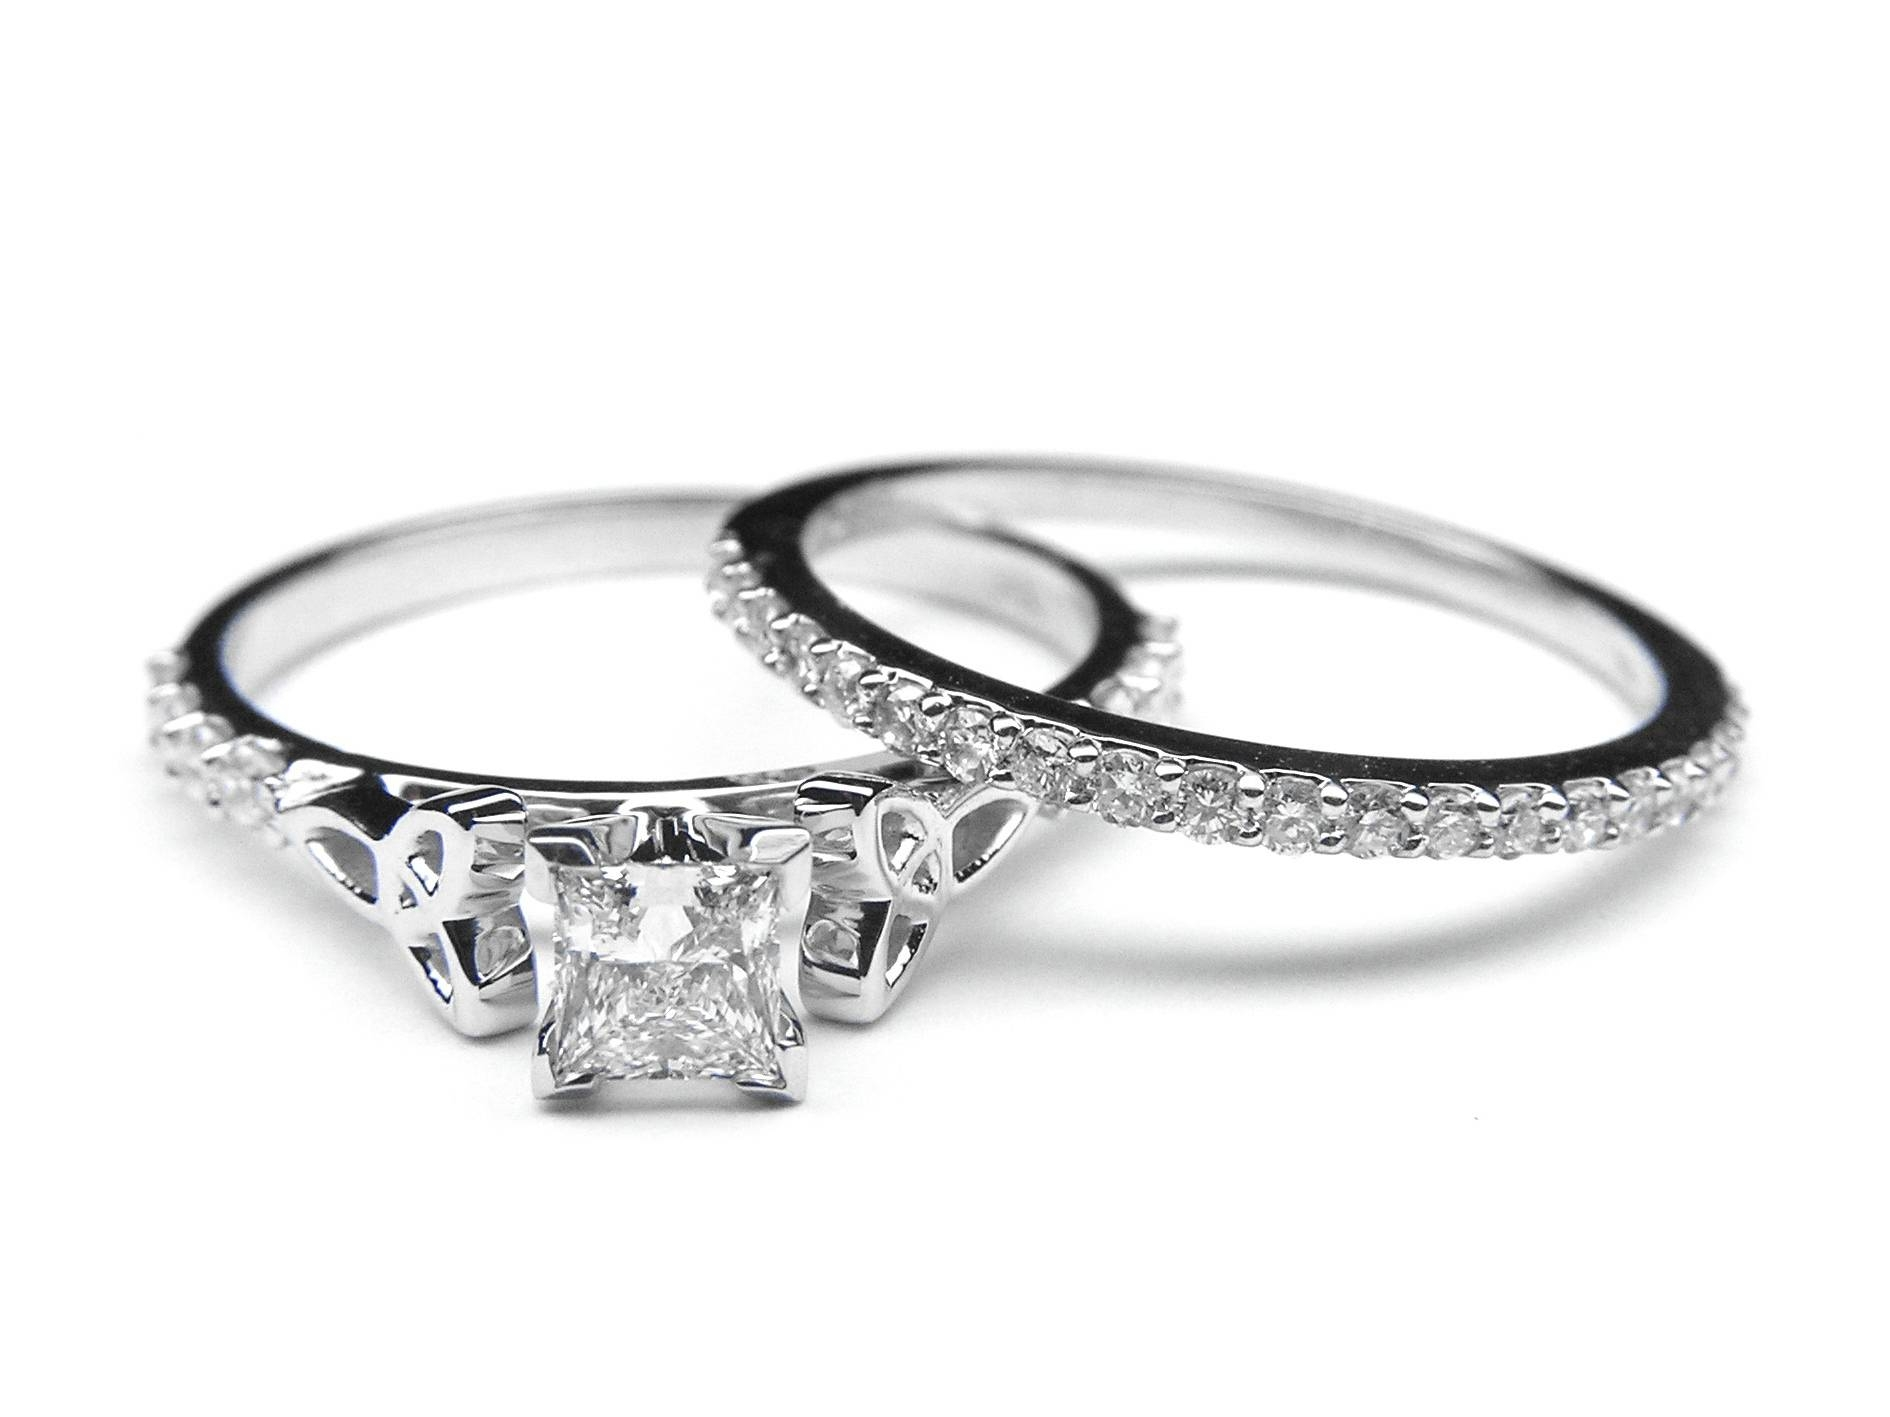 Celtic – Engagement Rings From Mdc Diamonds Nyc Pertaining To Celtic Engagement Rings (Gallery 3 of 15)